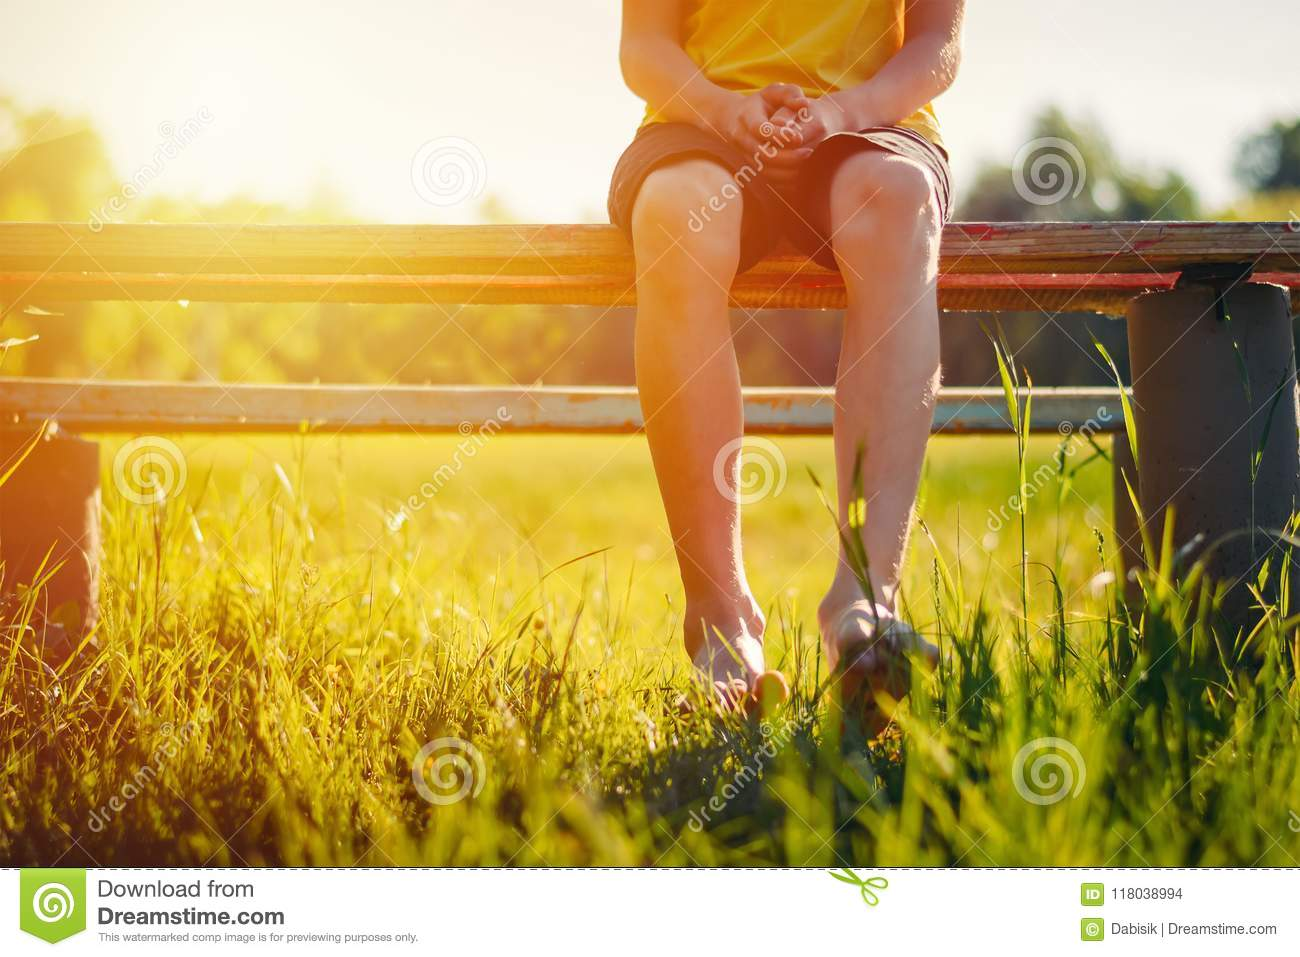 Bare feet of a boy hang down from a bench